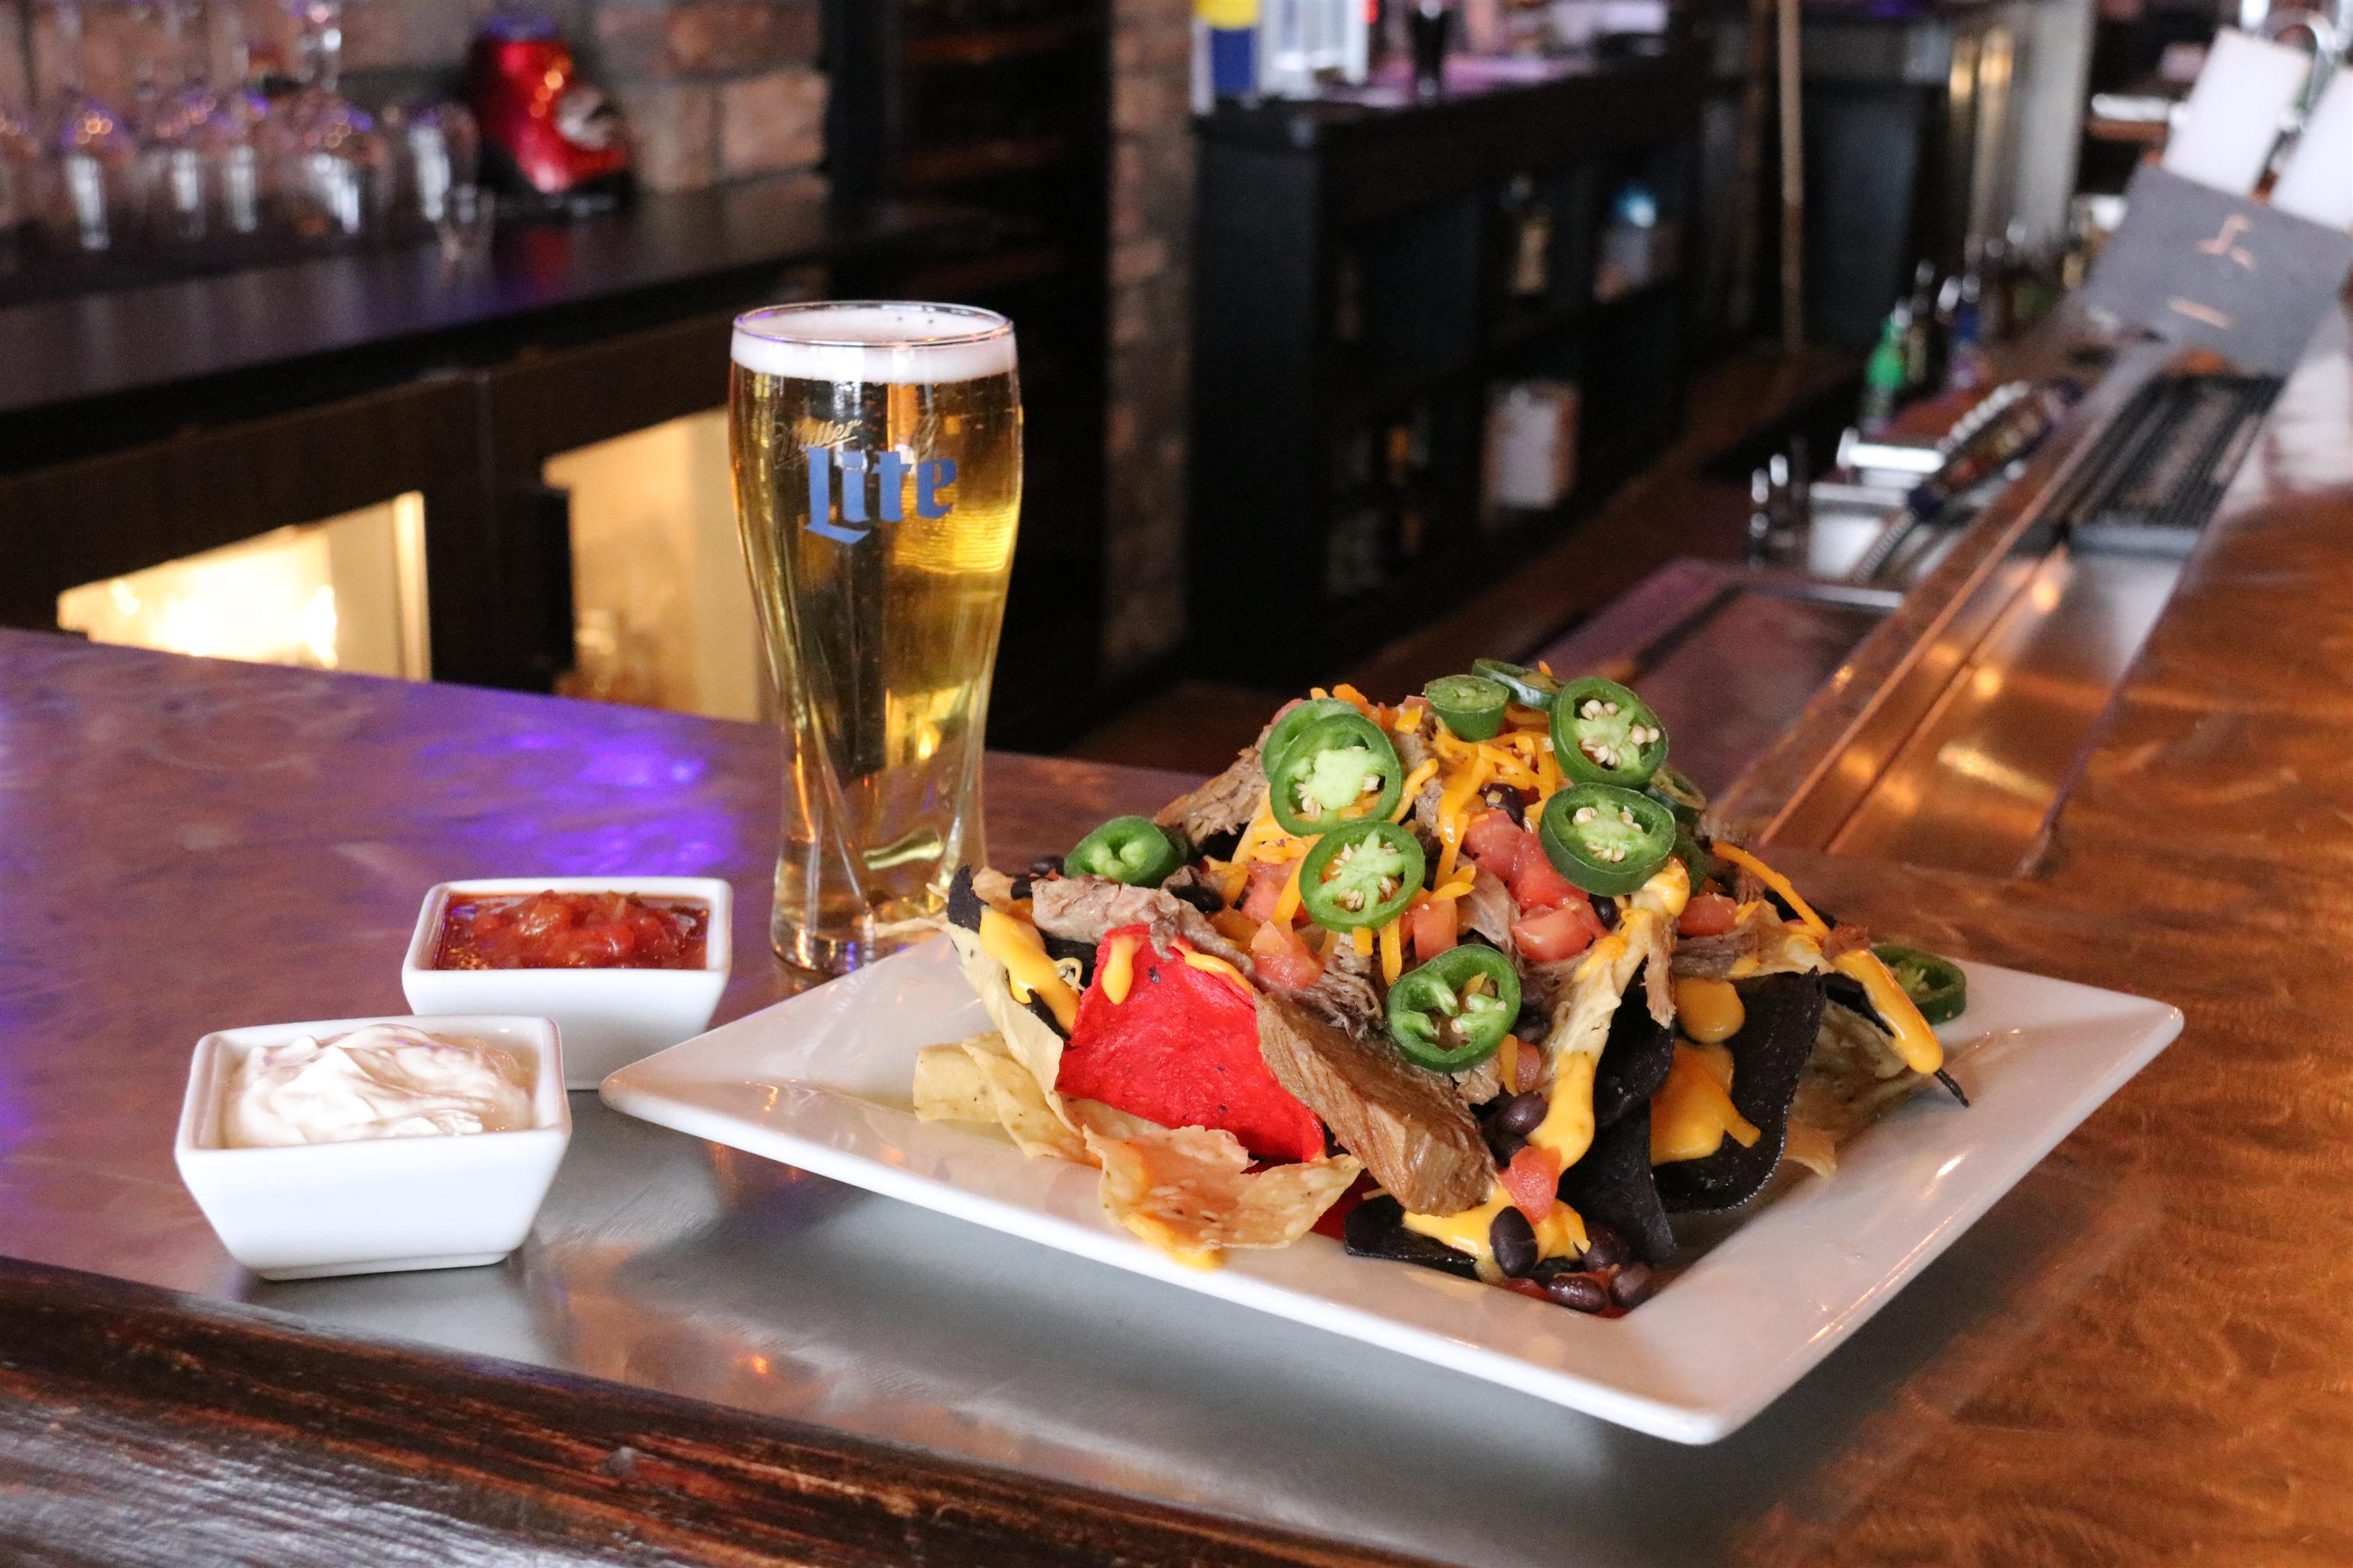 nachos covered in cheese with dressing and a glass of beer